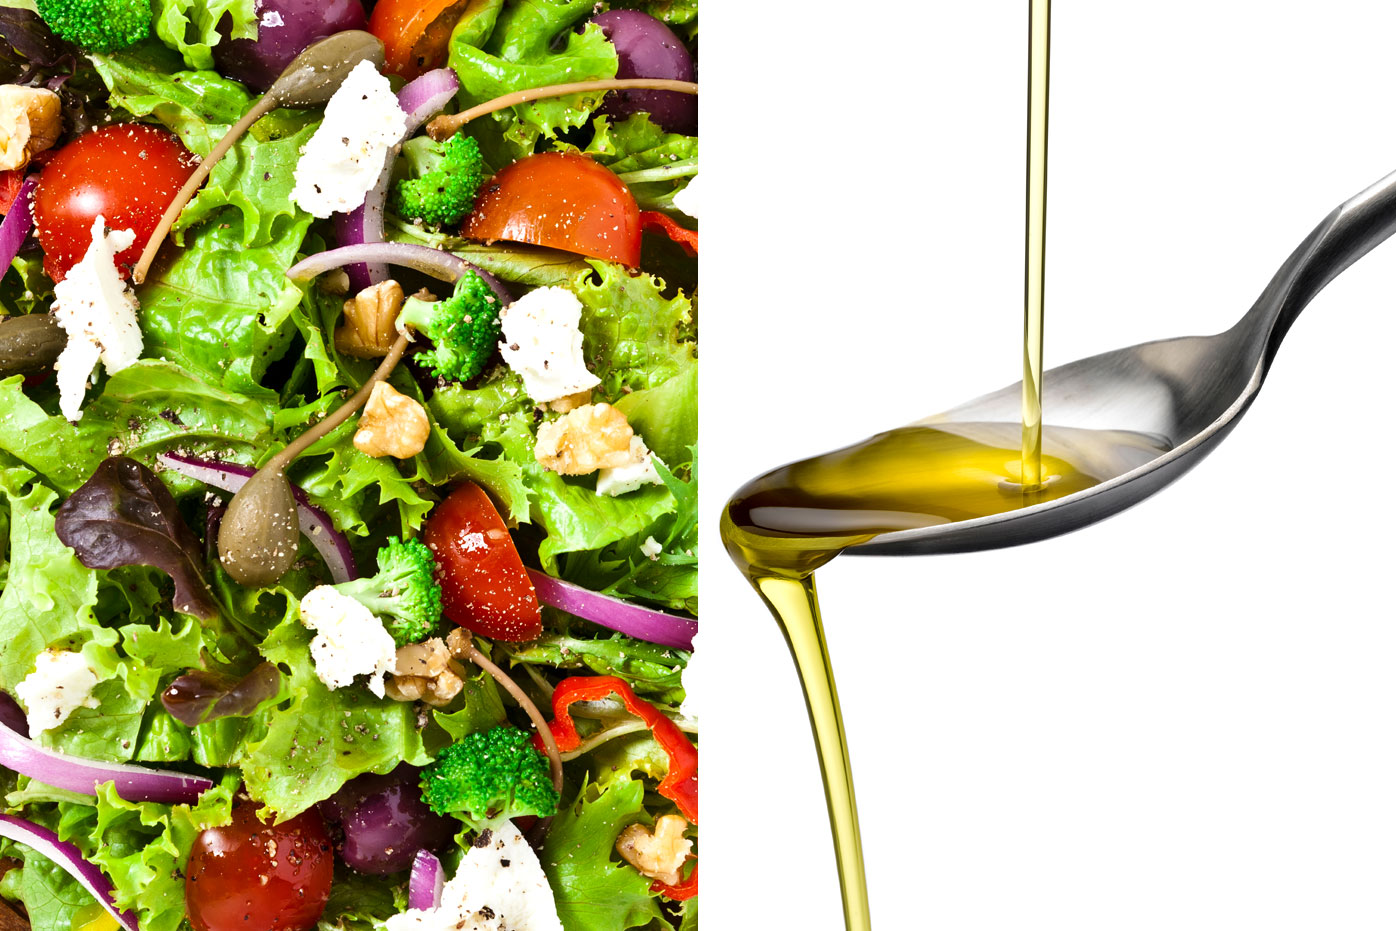 Salad vegetables with oil